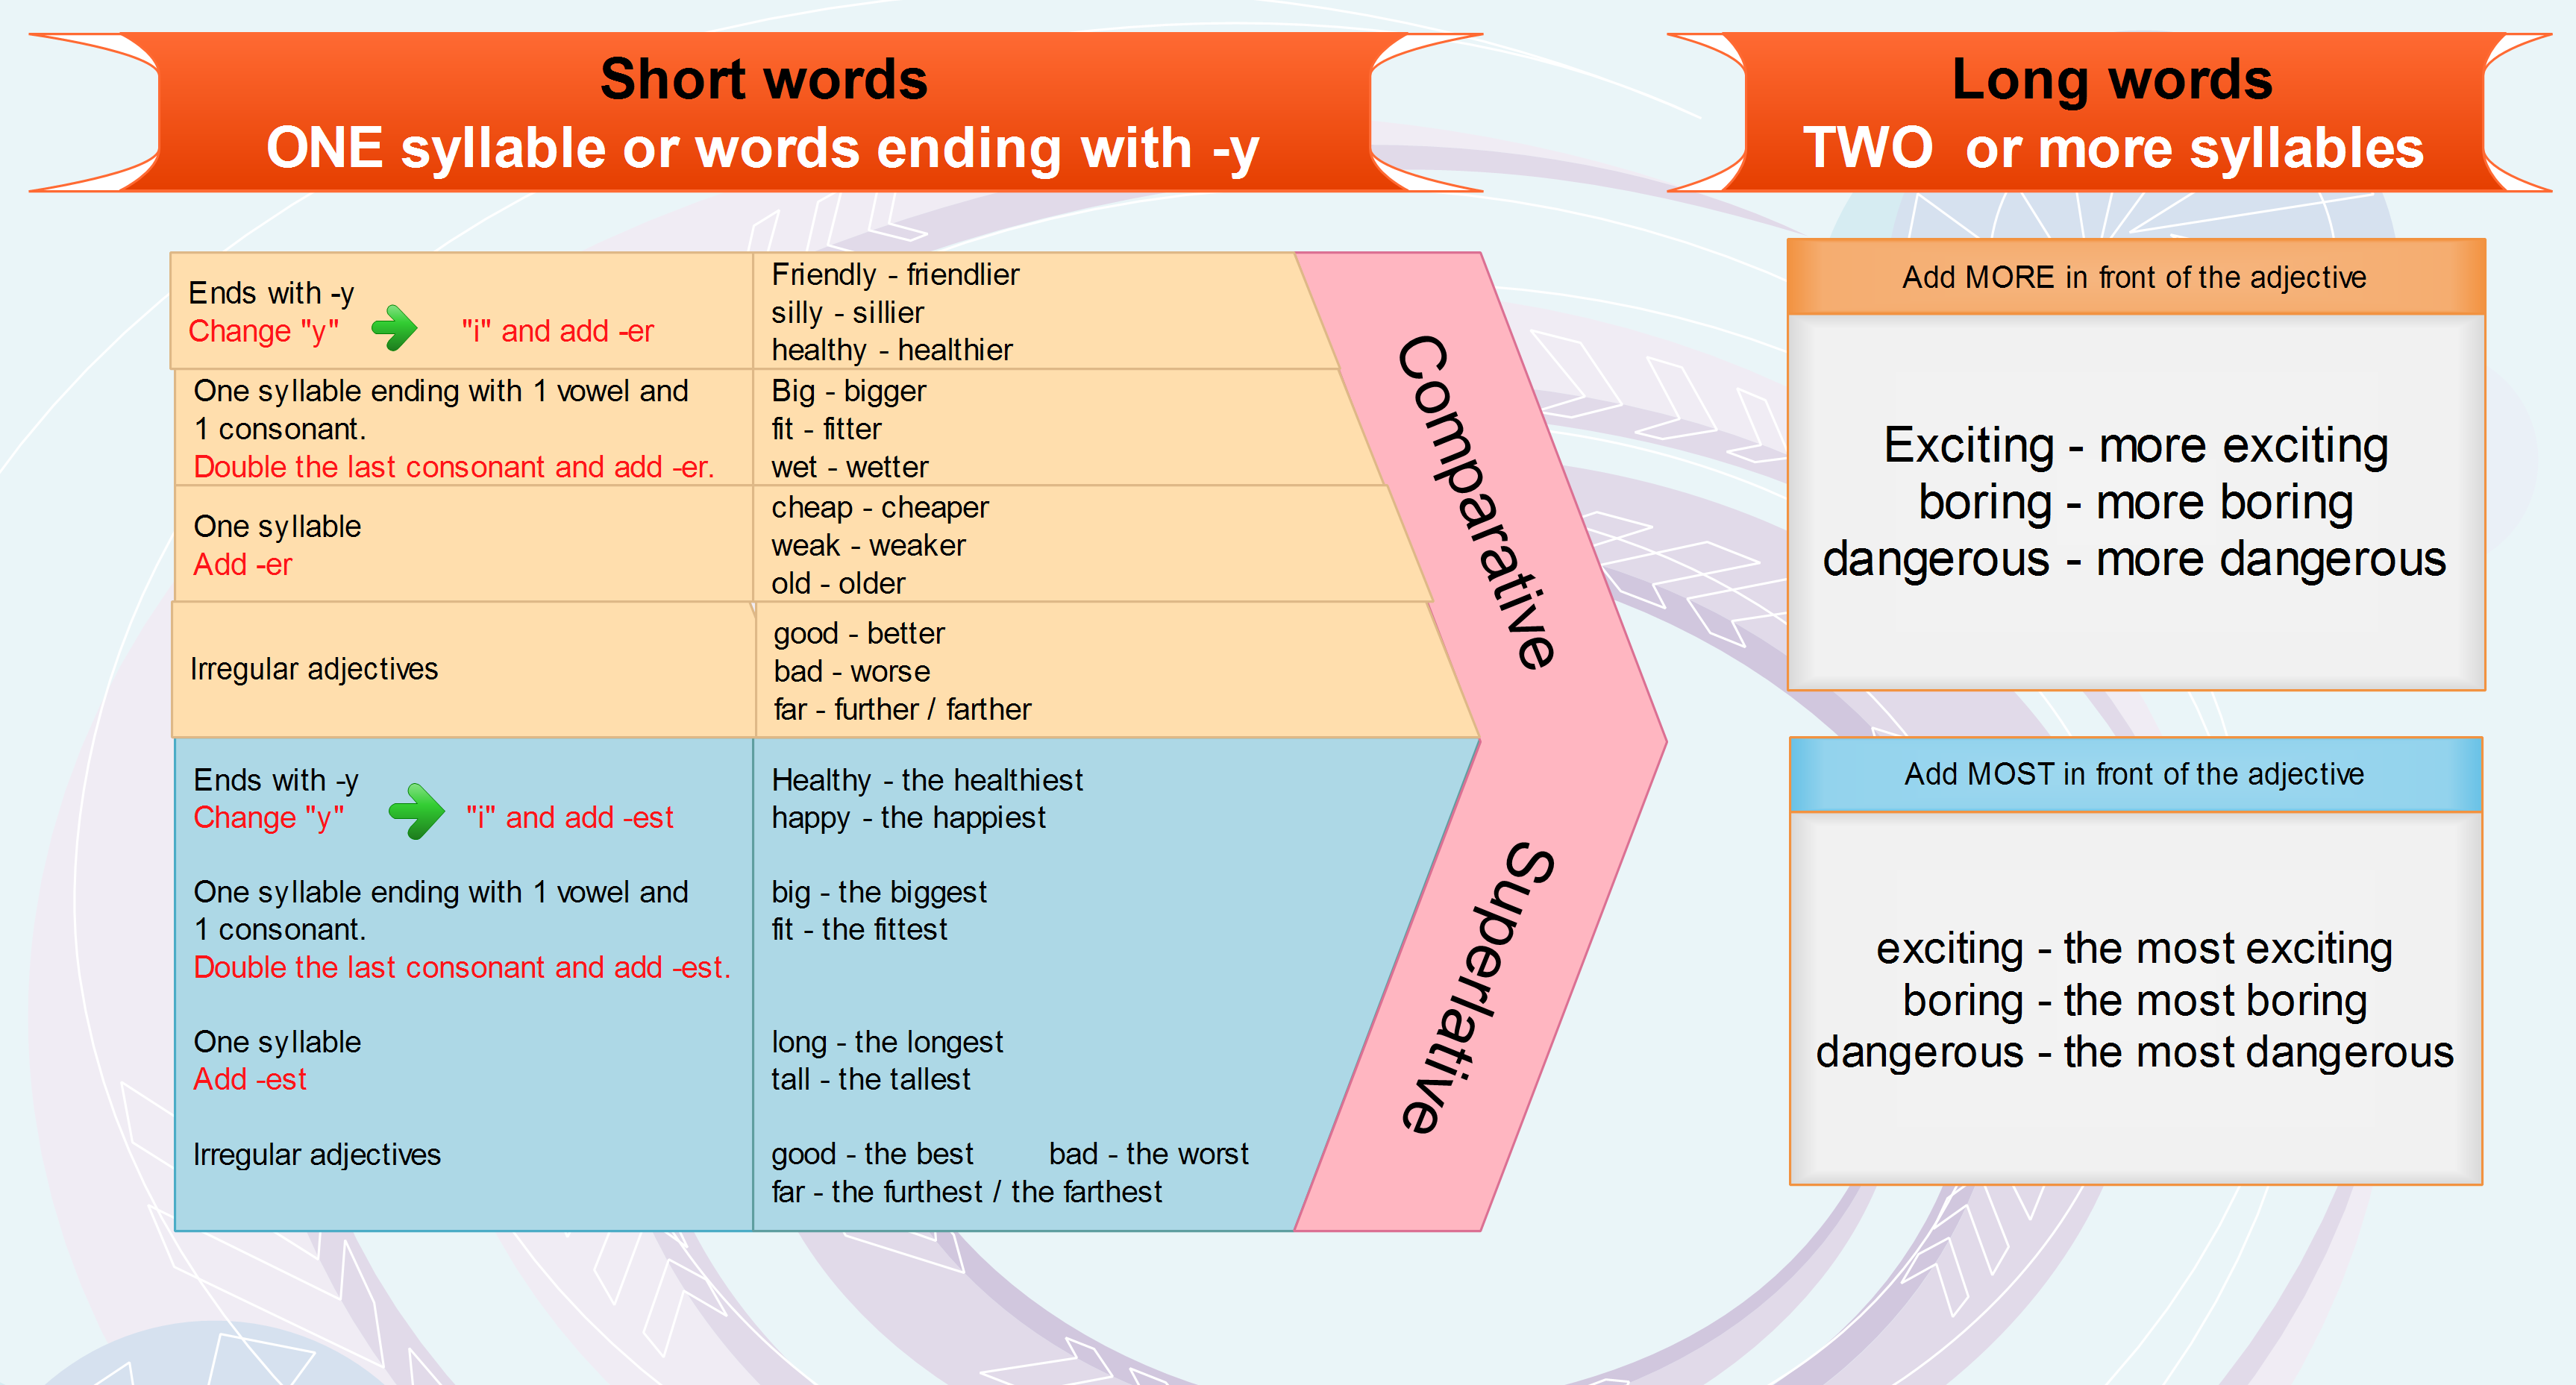 https://www.engames.eu/wp-content/uploads/2014/04/Comparatives-and-superlatives_mind-map.png